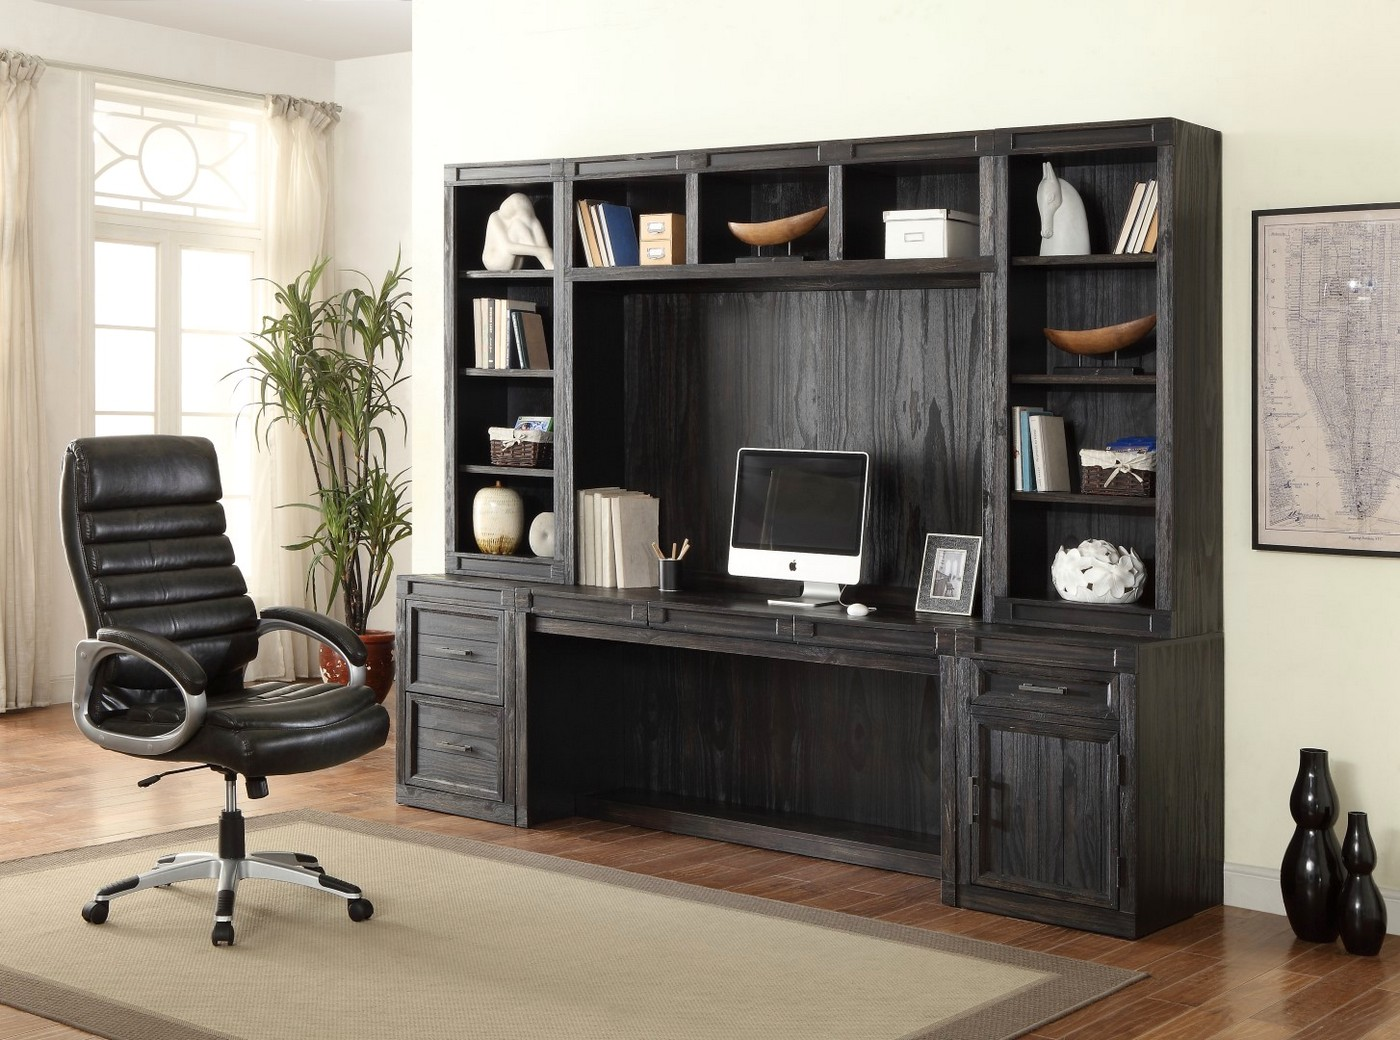 Hudson Rustic 6pc Home Office Furniture Desk Set In Dark Distressed Midnight Finish